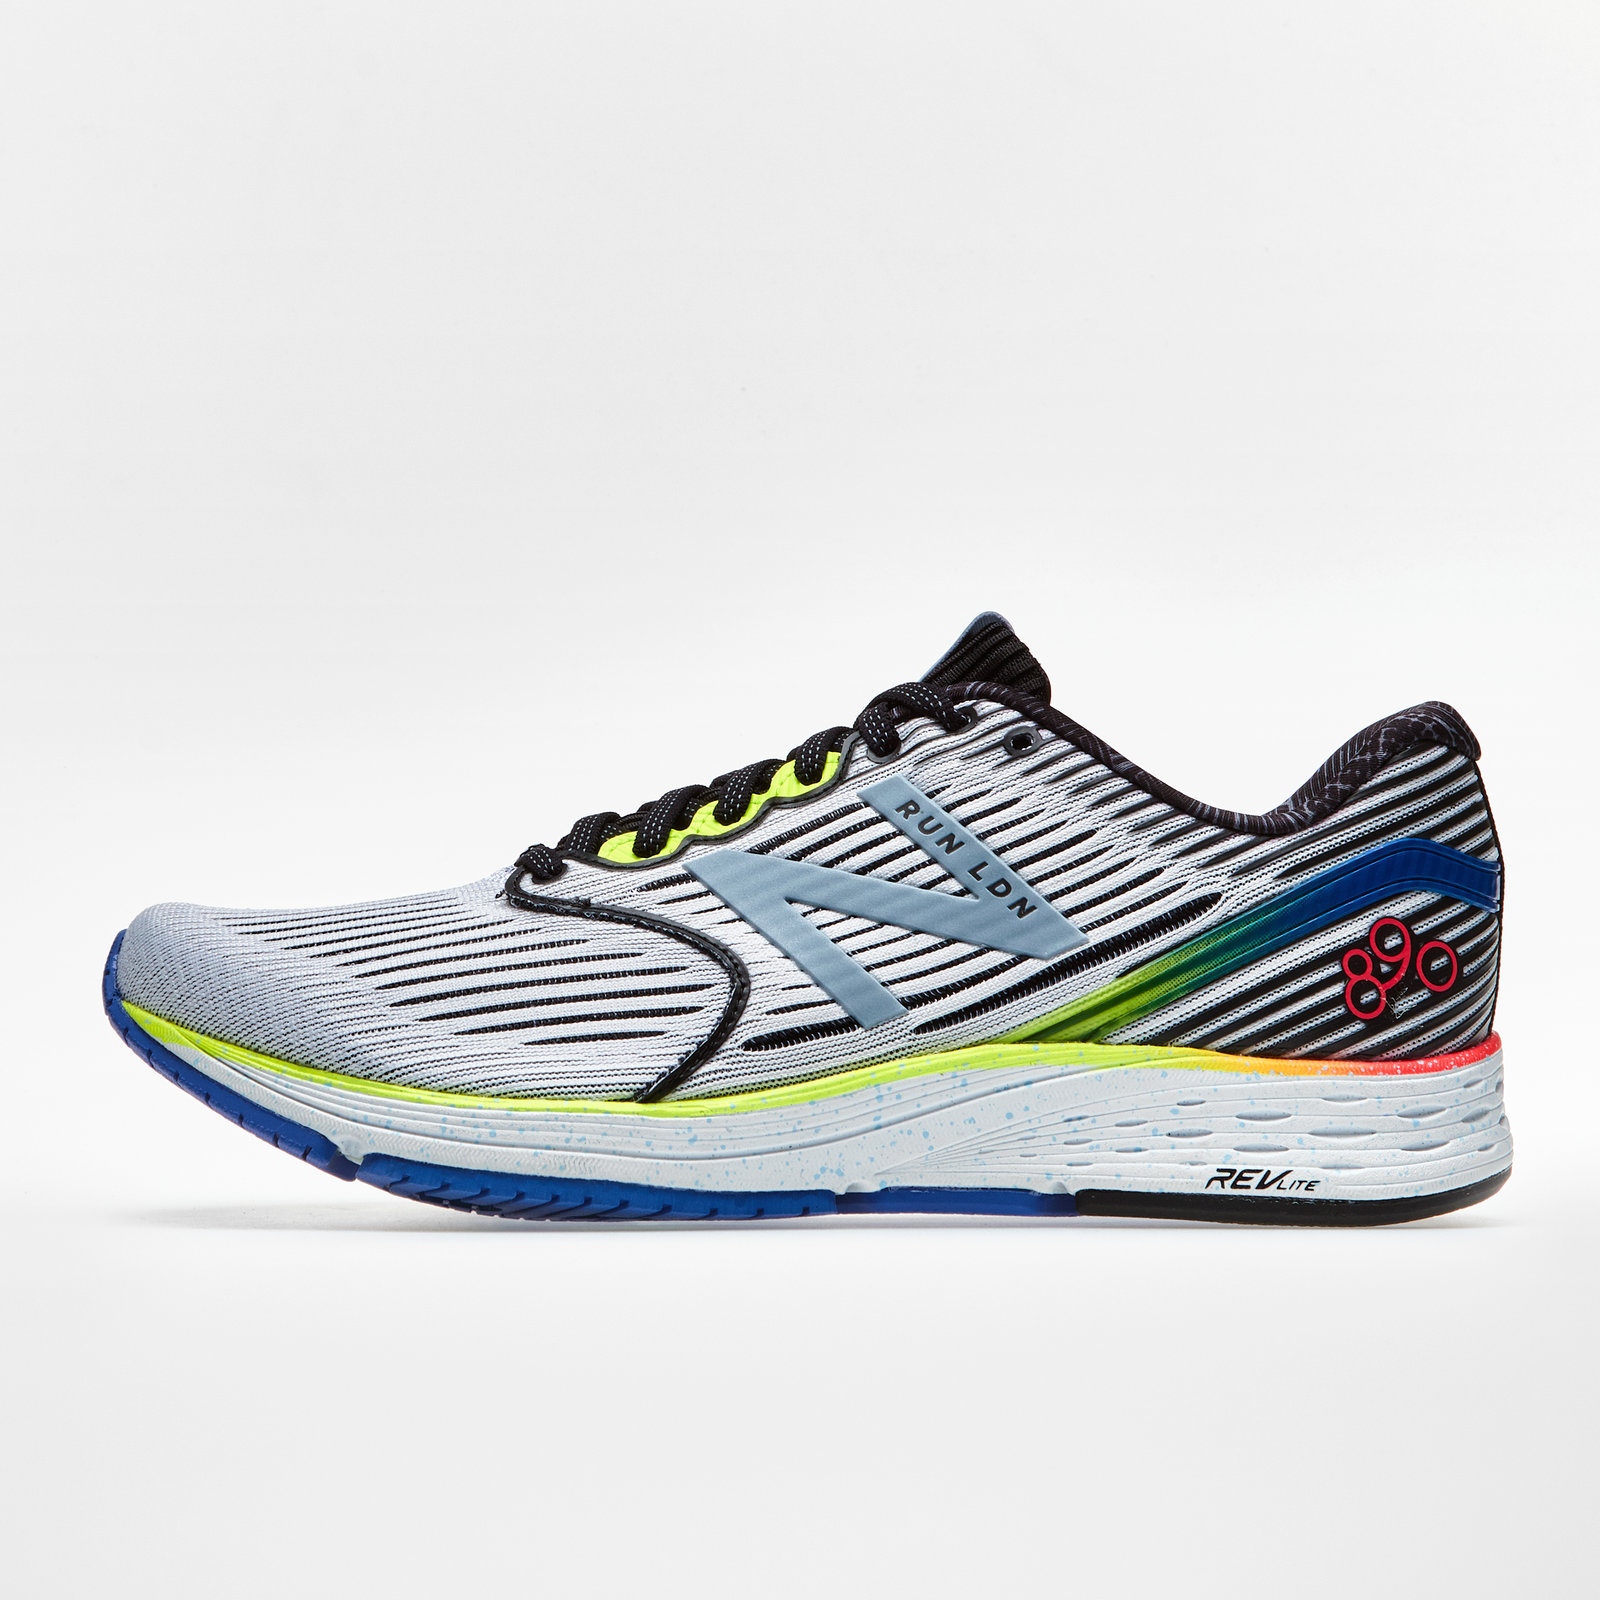 Image of 890 V6 Mens Running Shoes